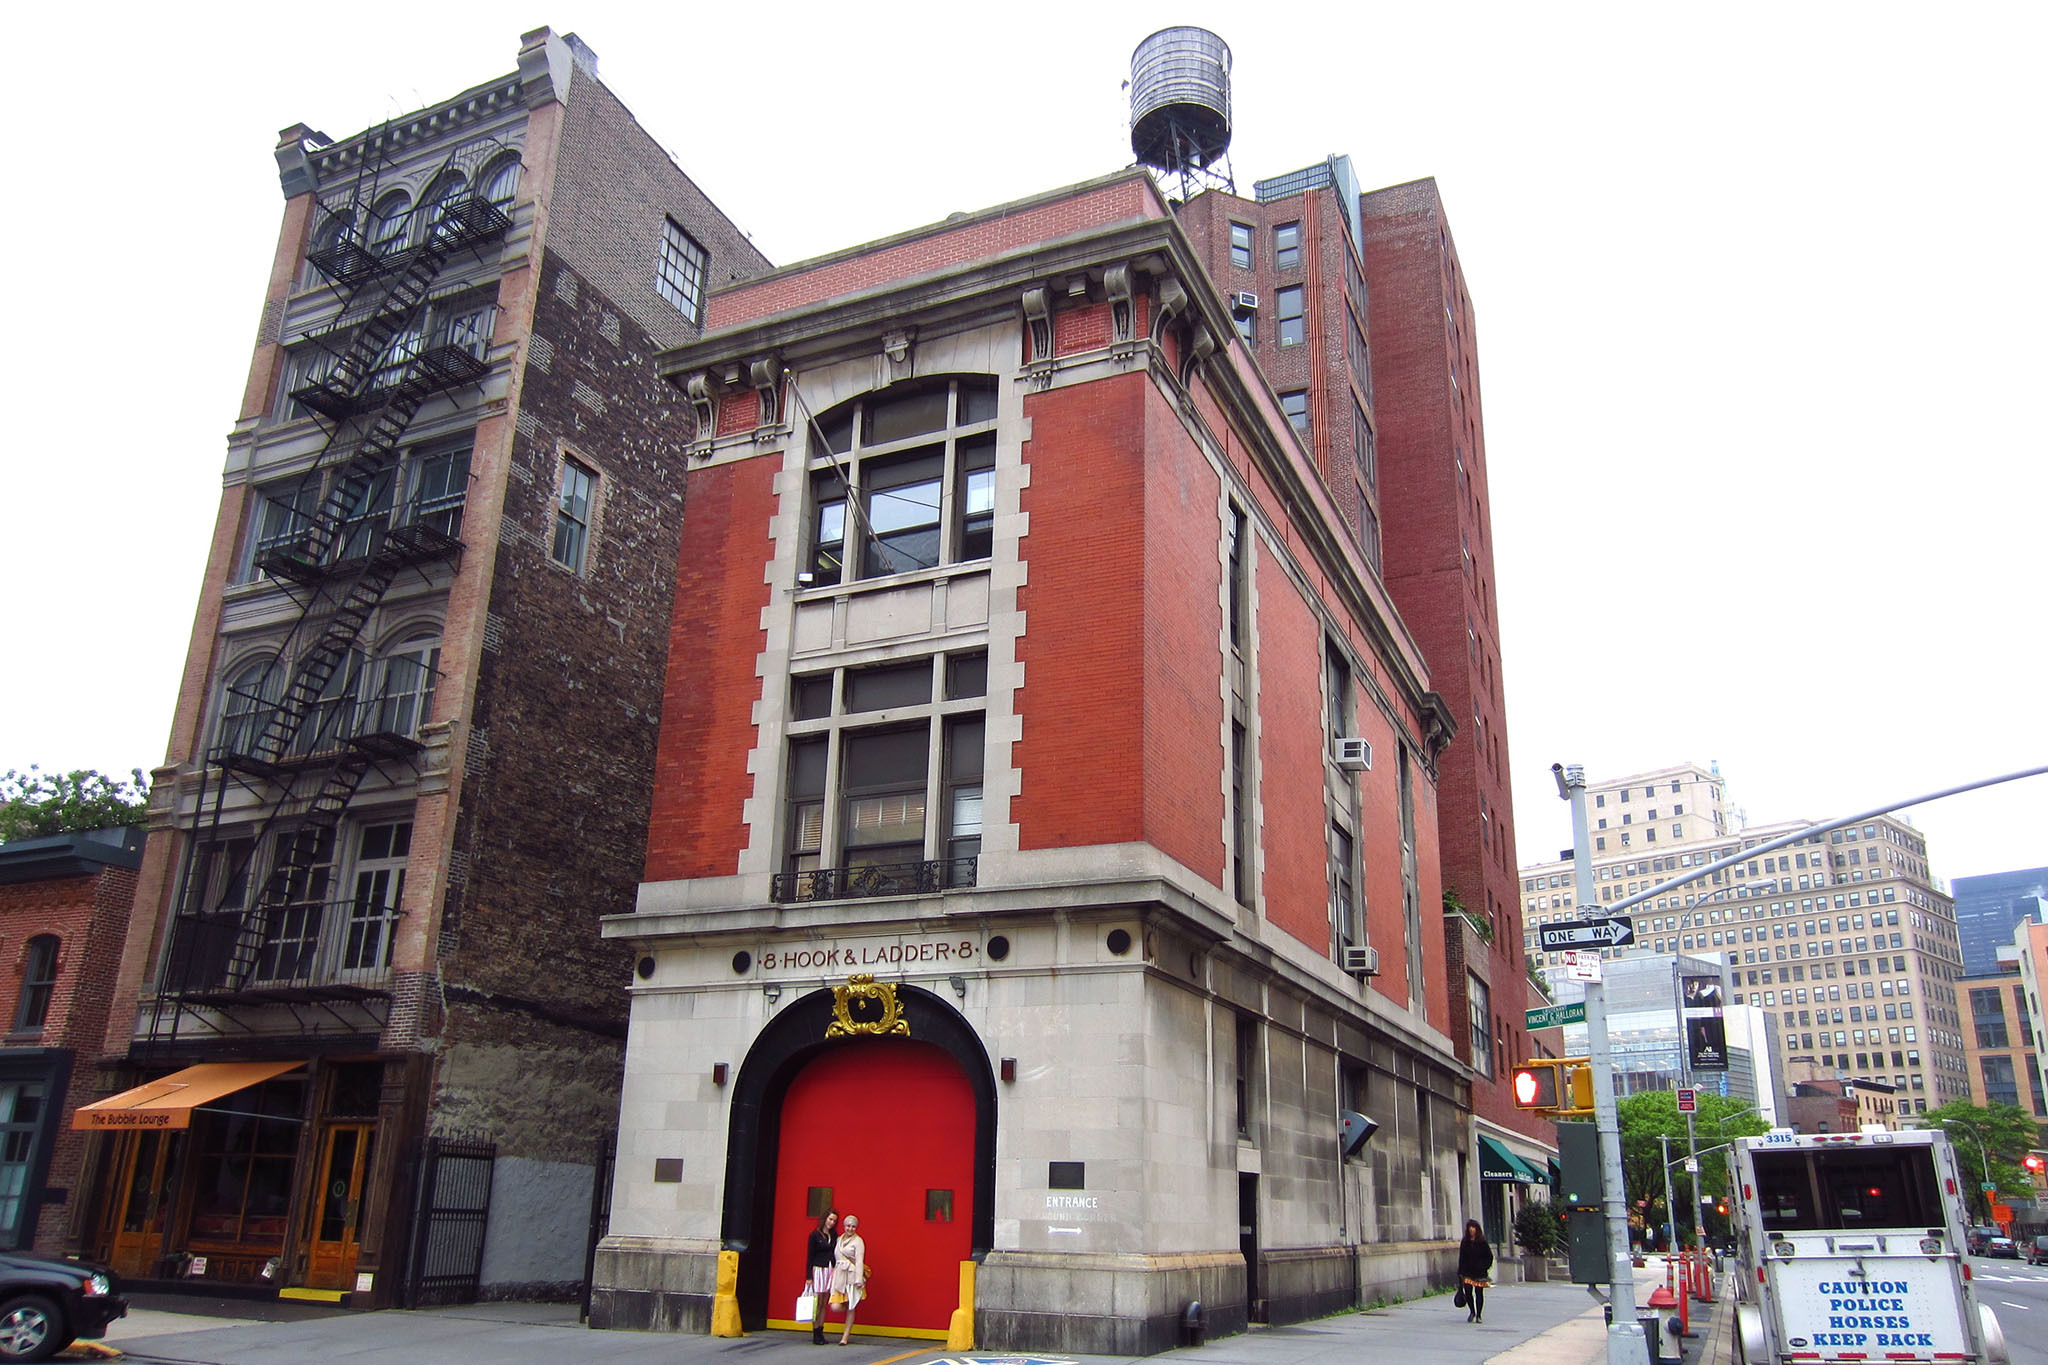 Fire station from Ghostbusters